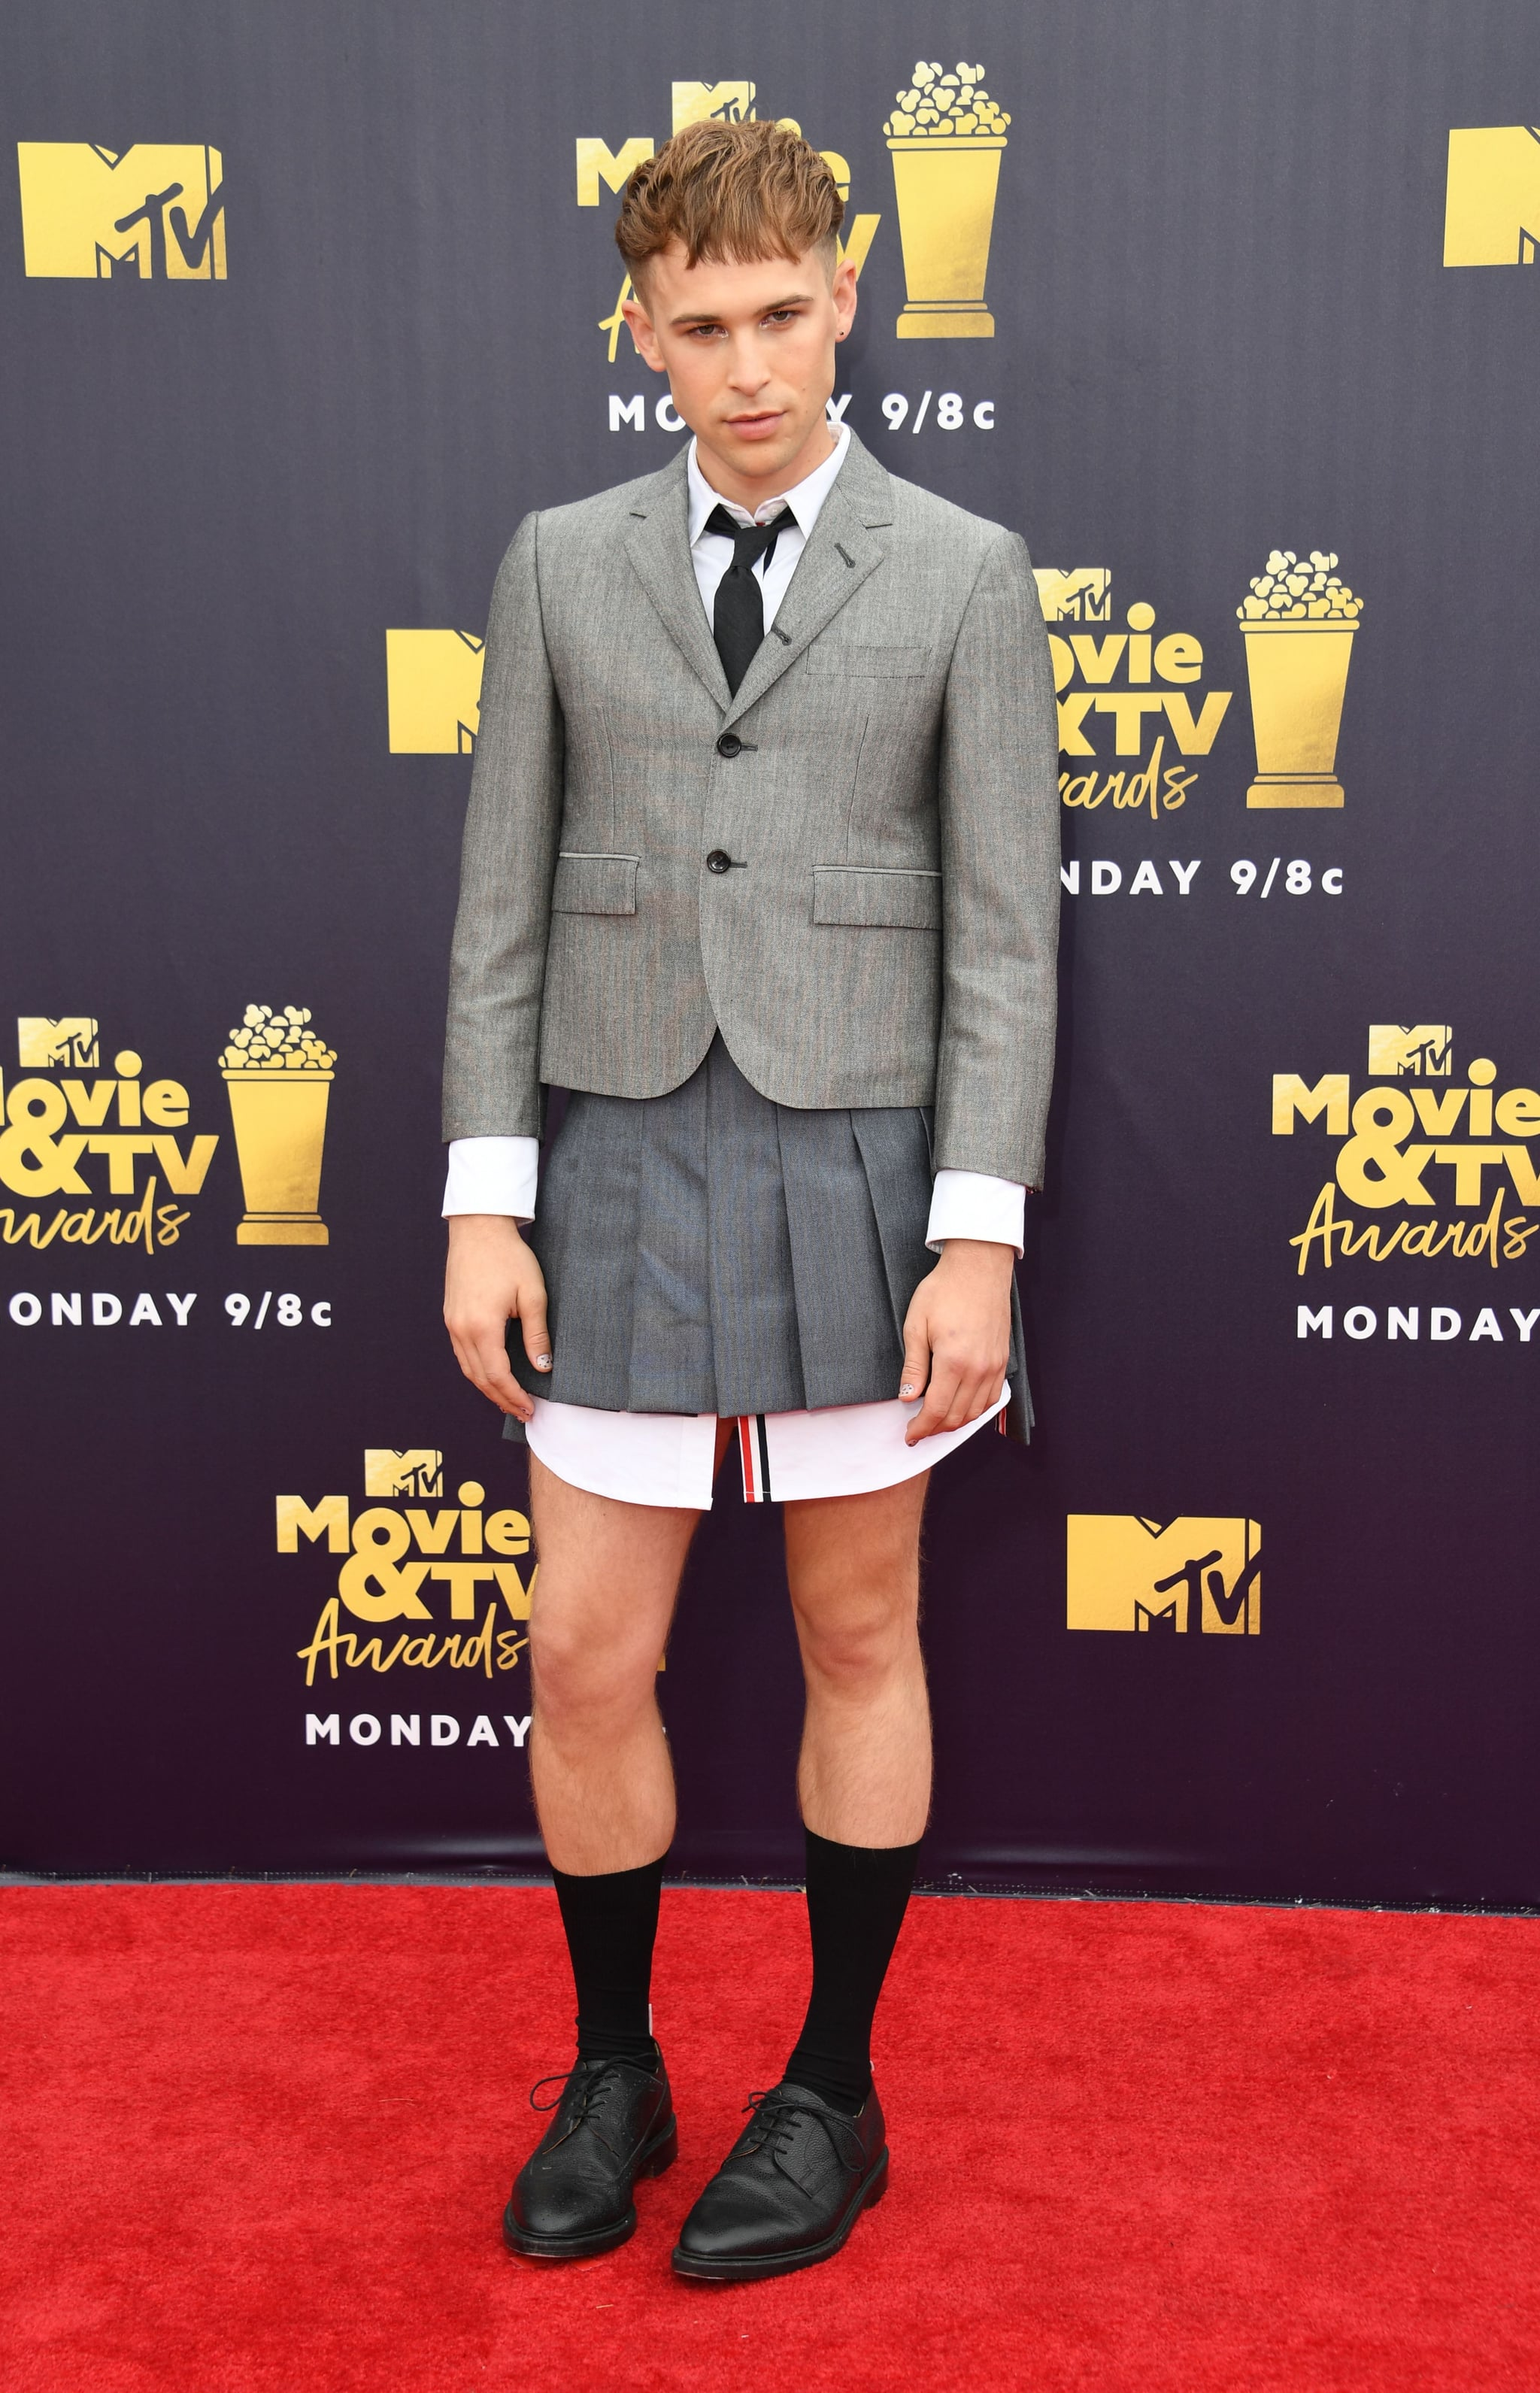 Tommy Dorfman   The MTV Movie and TV Awards Were Basically Just a MASSIVE  13 Reasons Why Reunion   POPSUGAR Entertainment Photo 4